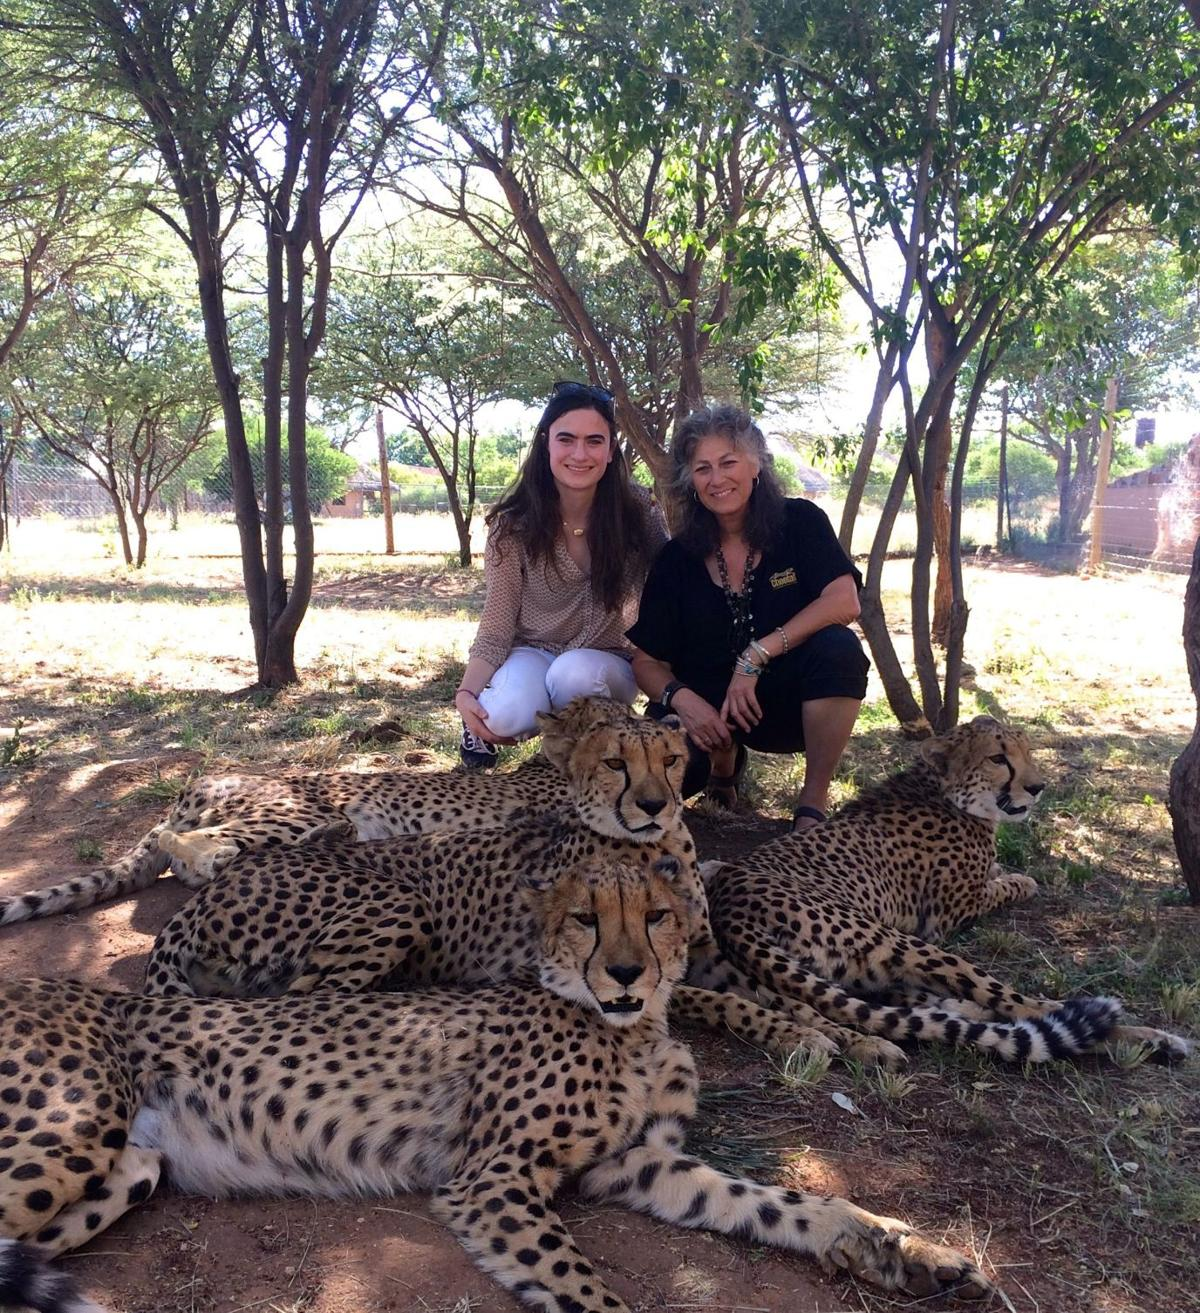 Keeper of the cats; cheetah conservator to speak at Ashley Hall